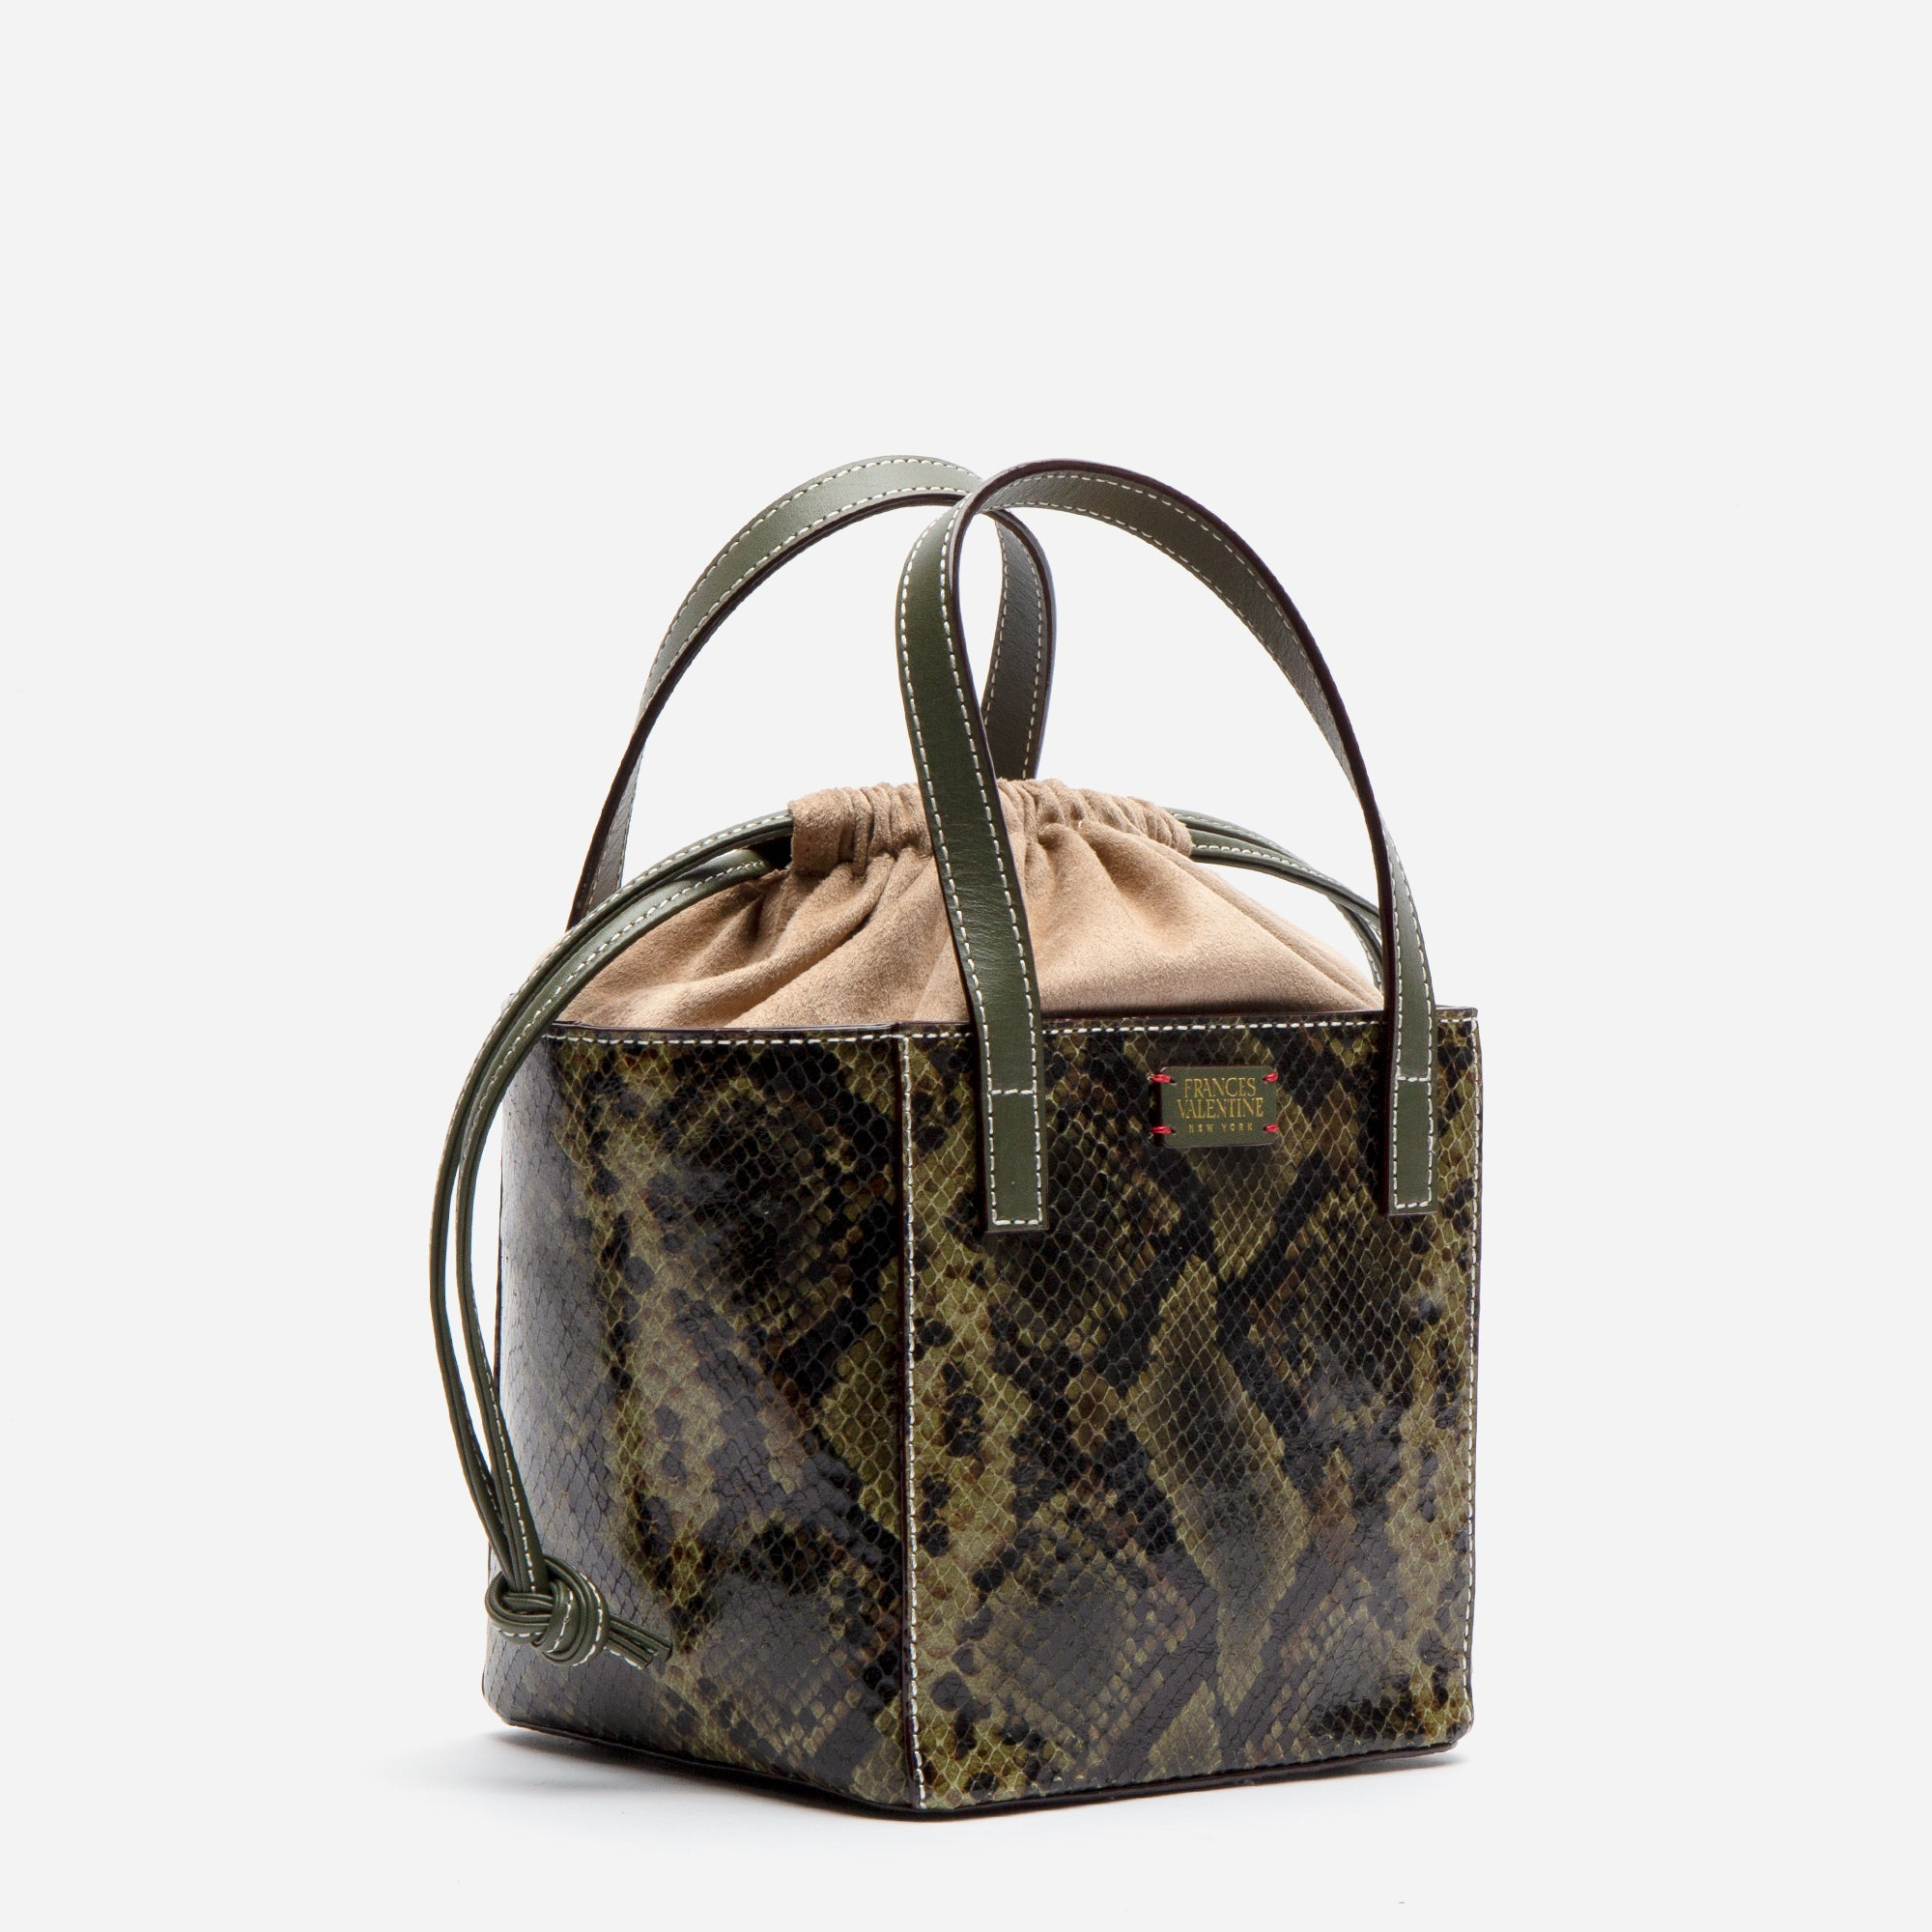 Moxy Cube Tote Snake Embossed Olive